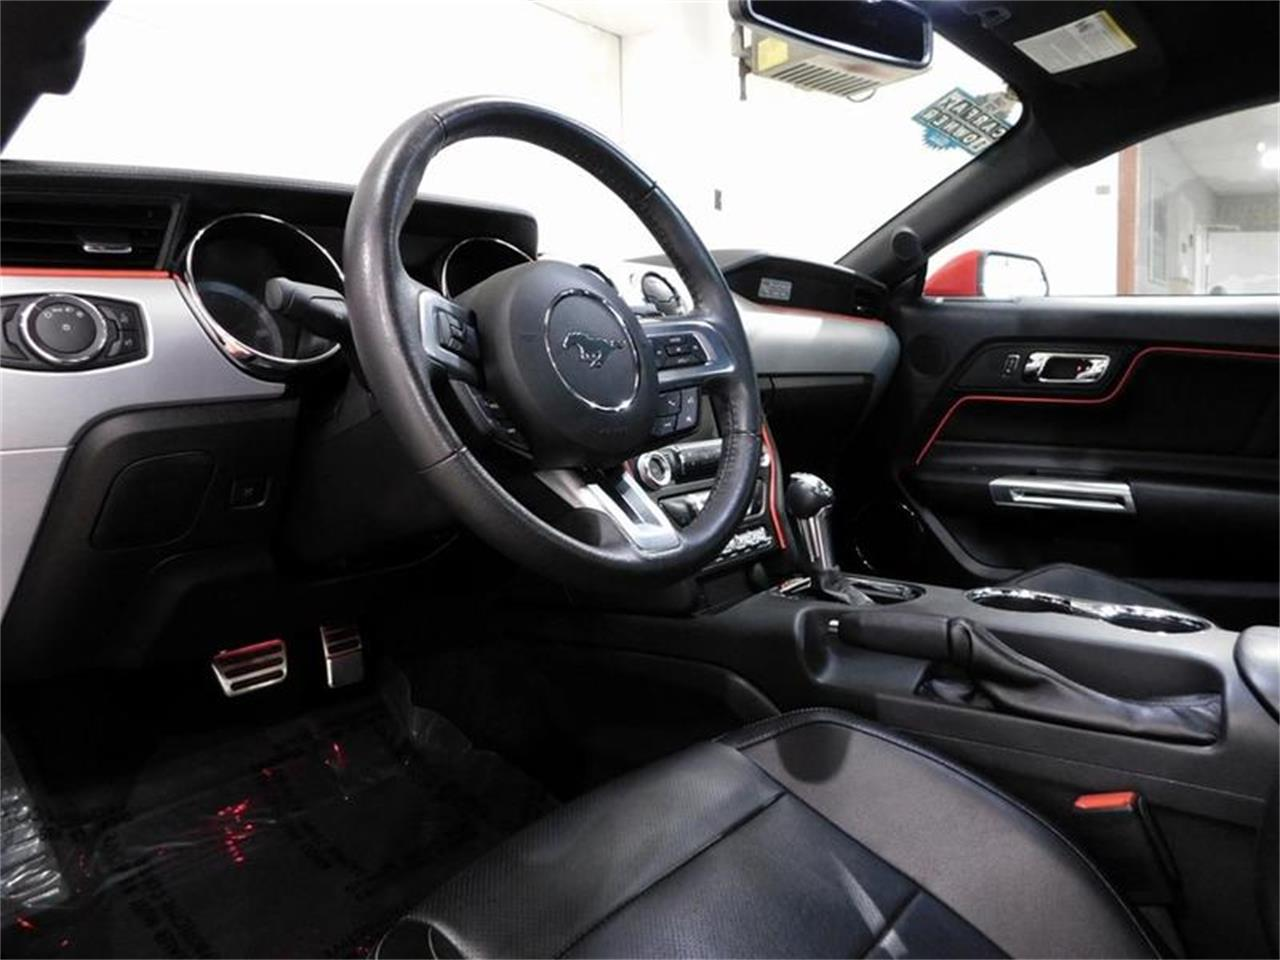 2015 Ford Mustang for sale in Hamburg, NY – photo 91